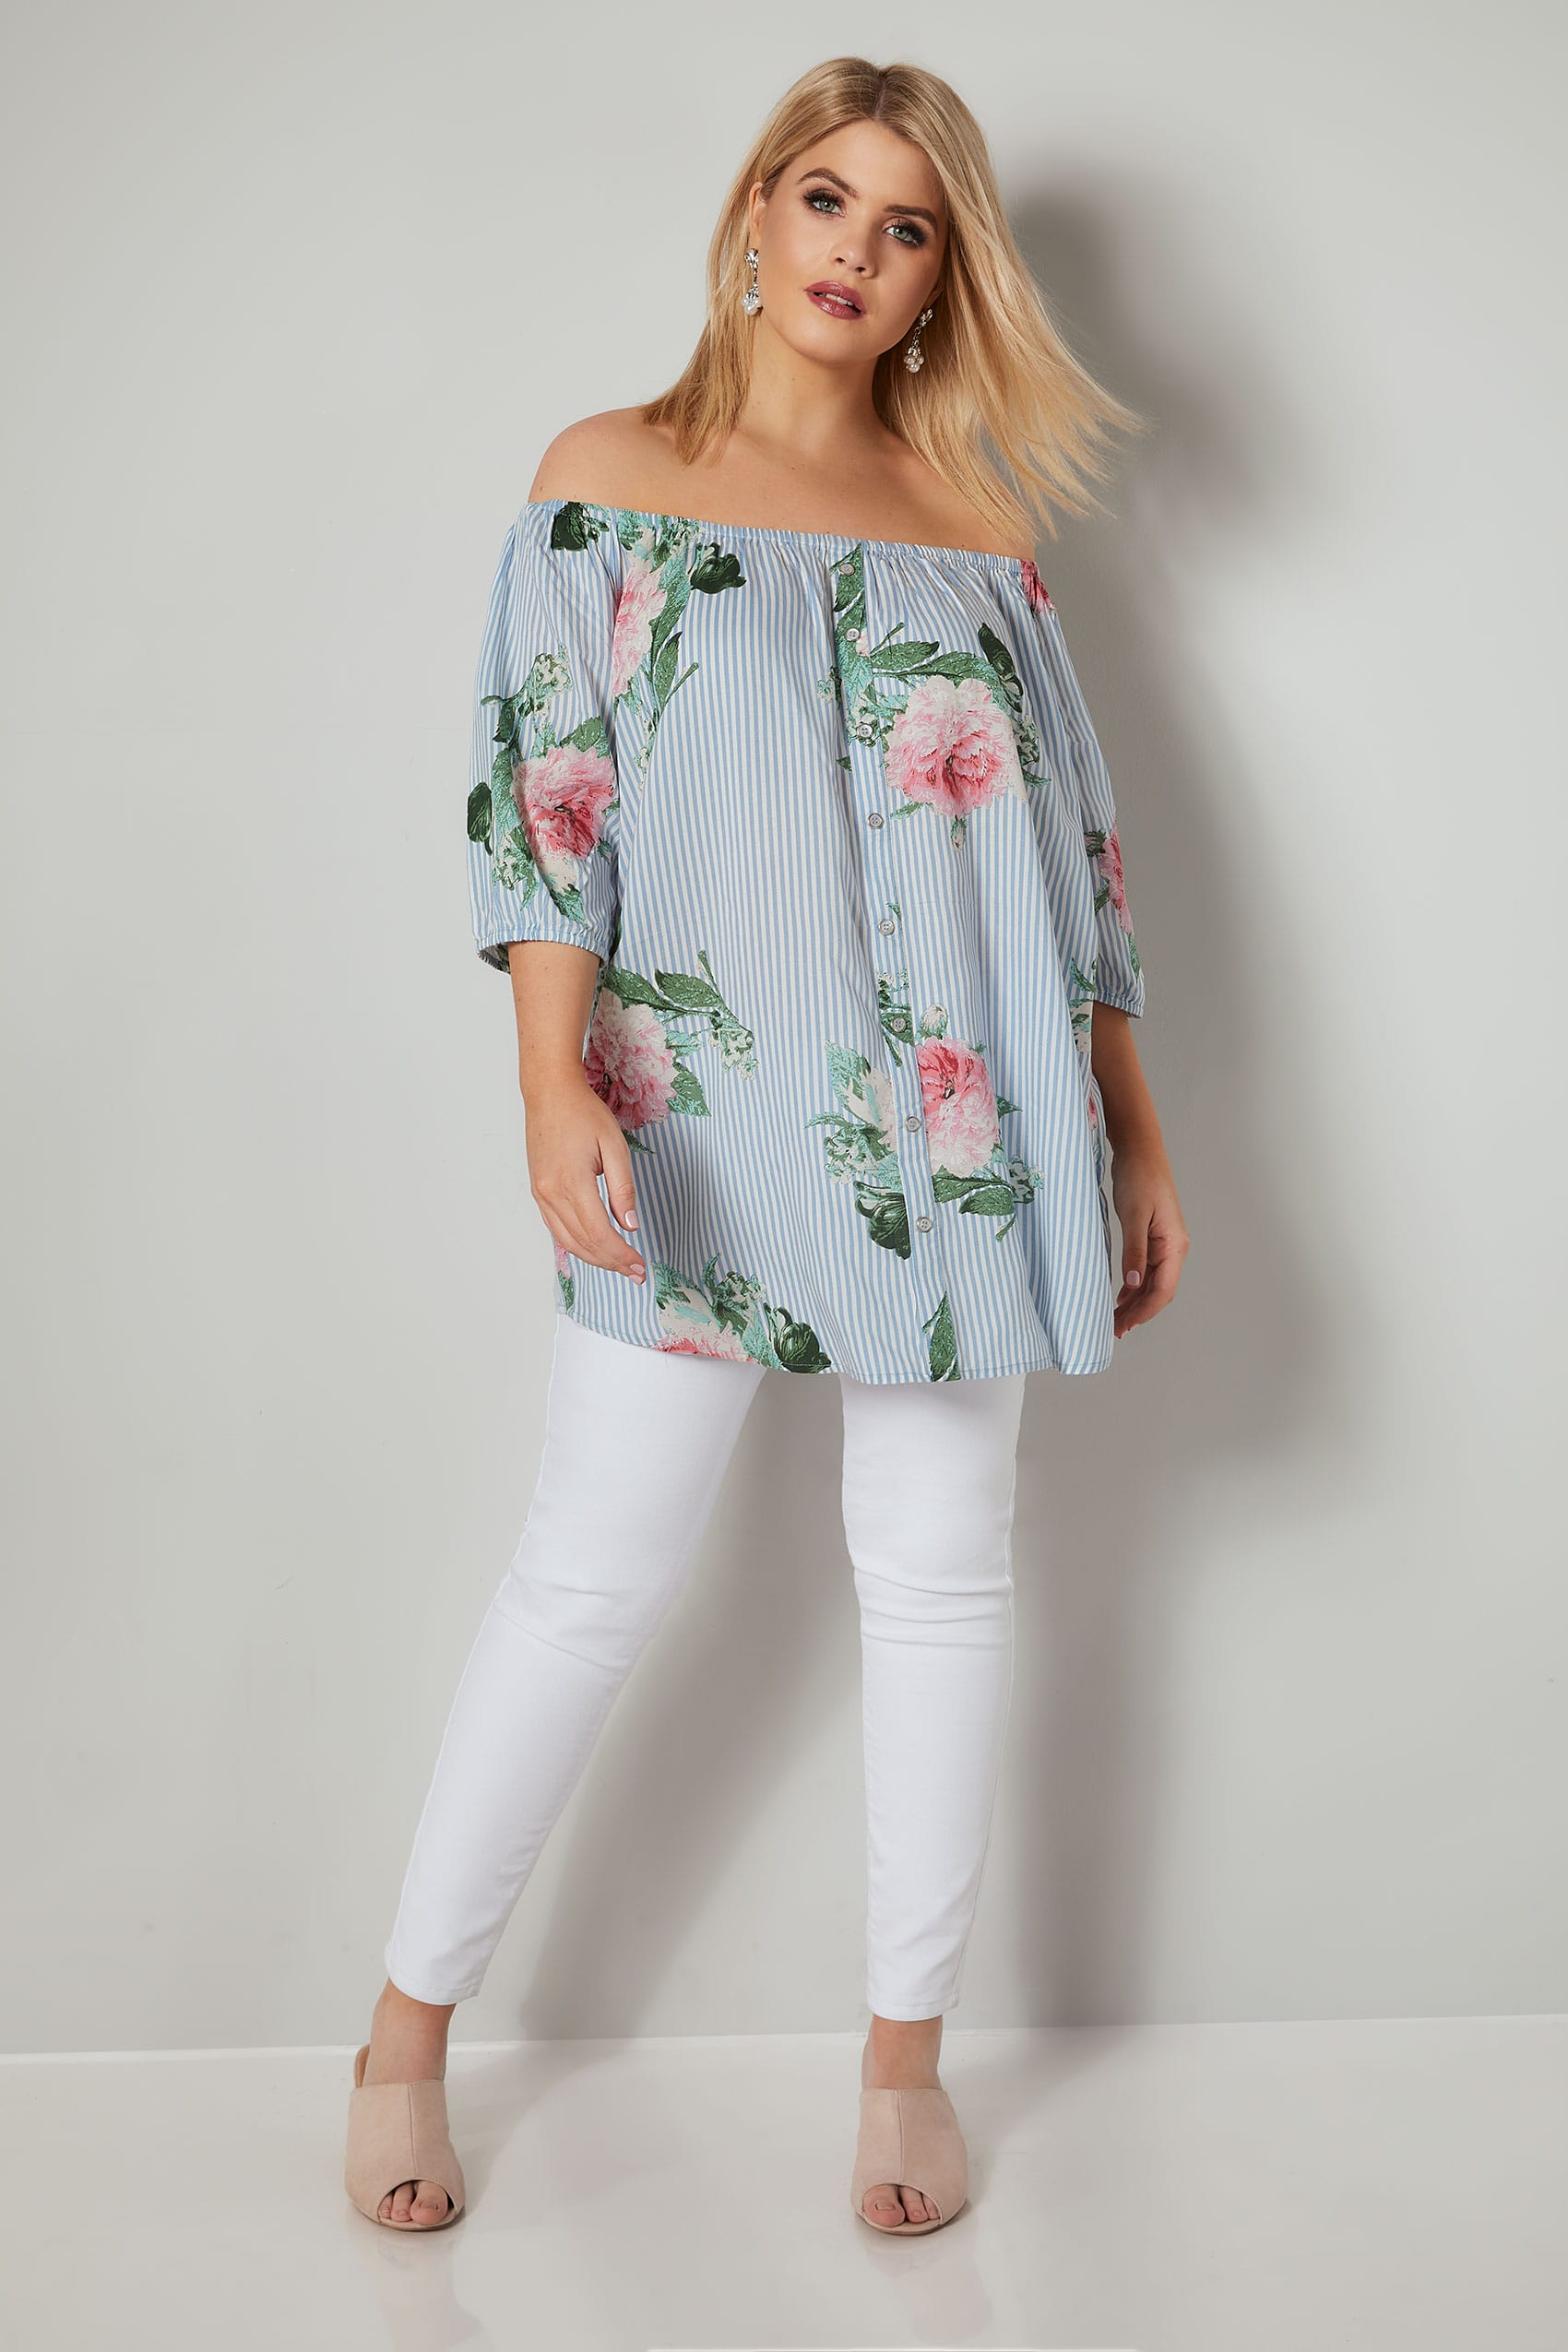 a148a43d3b9a86 Blue   White Stripe Bardot Top With Floral Print